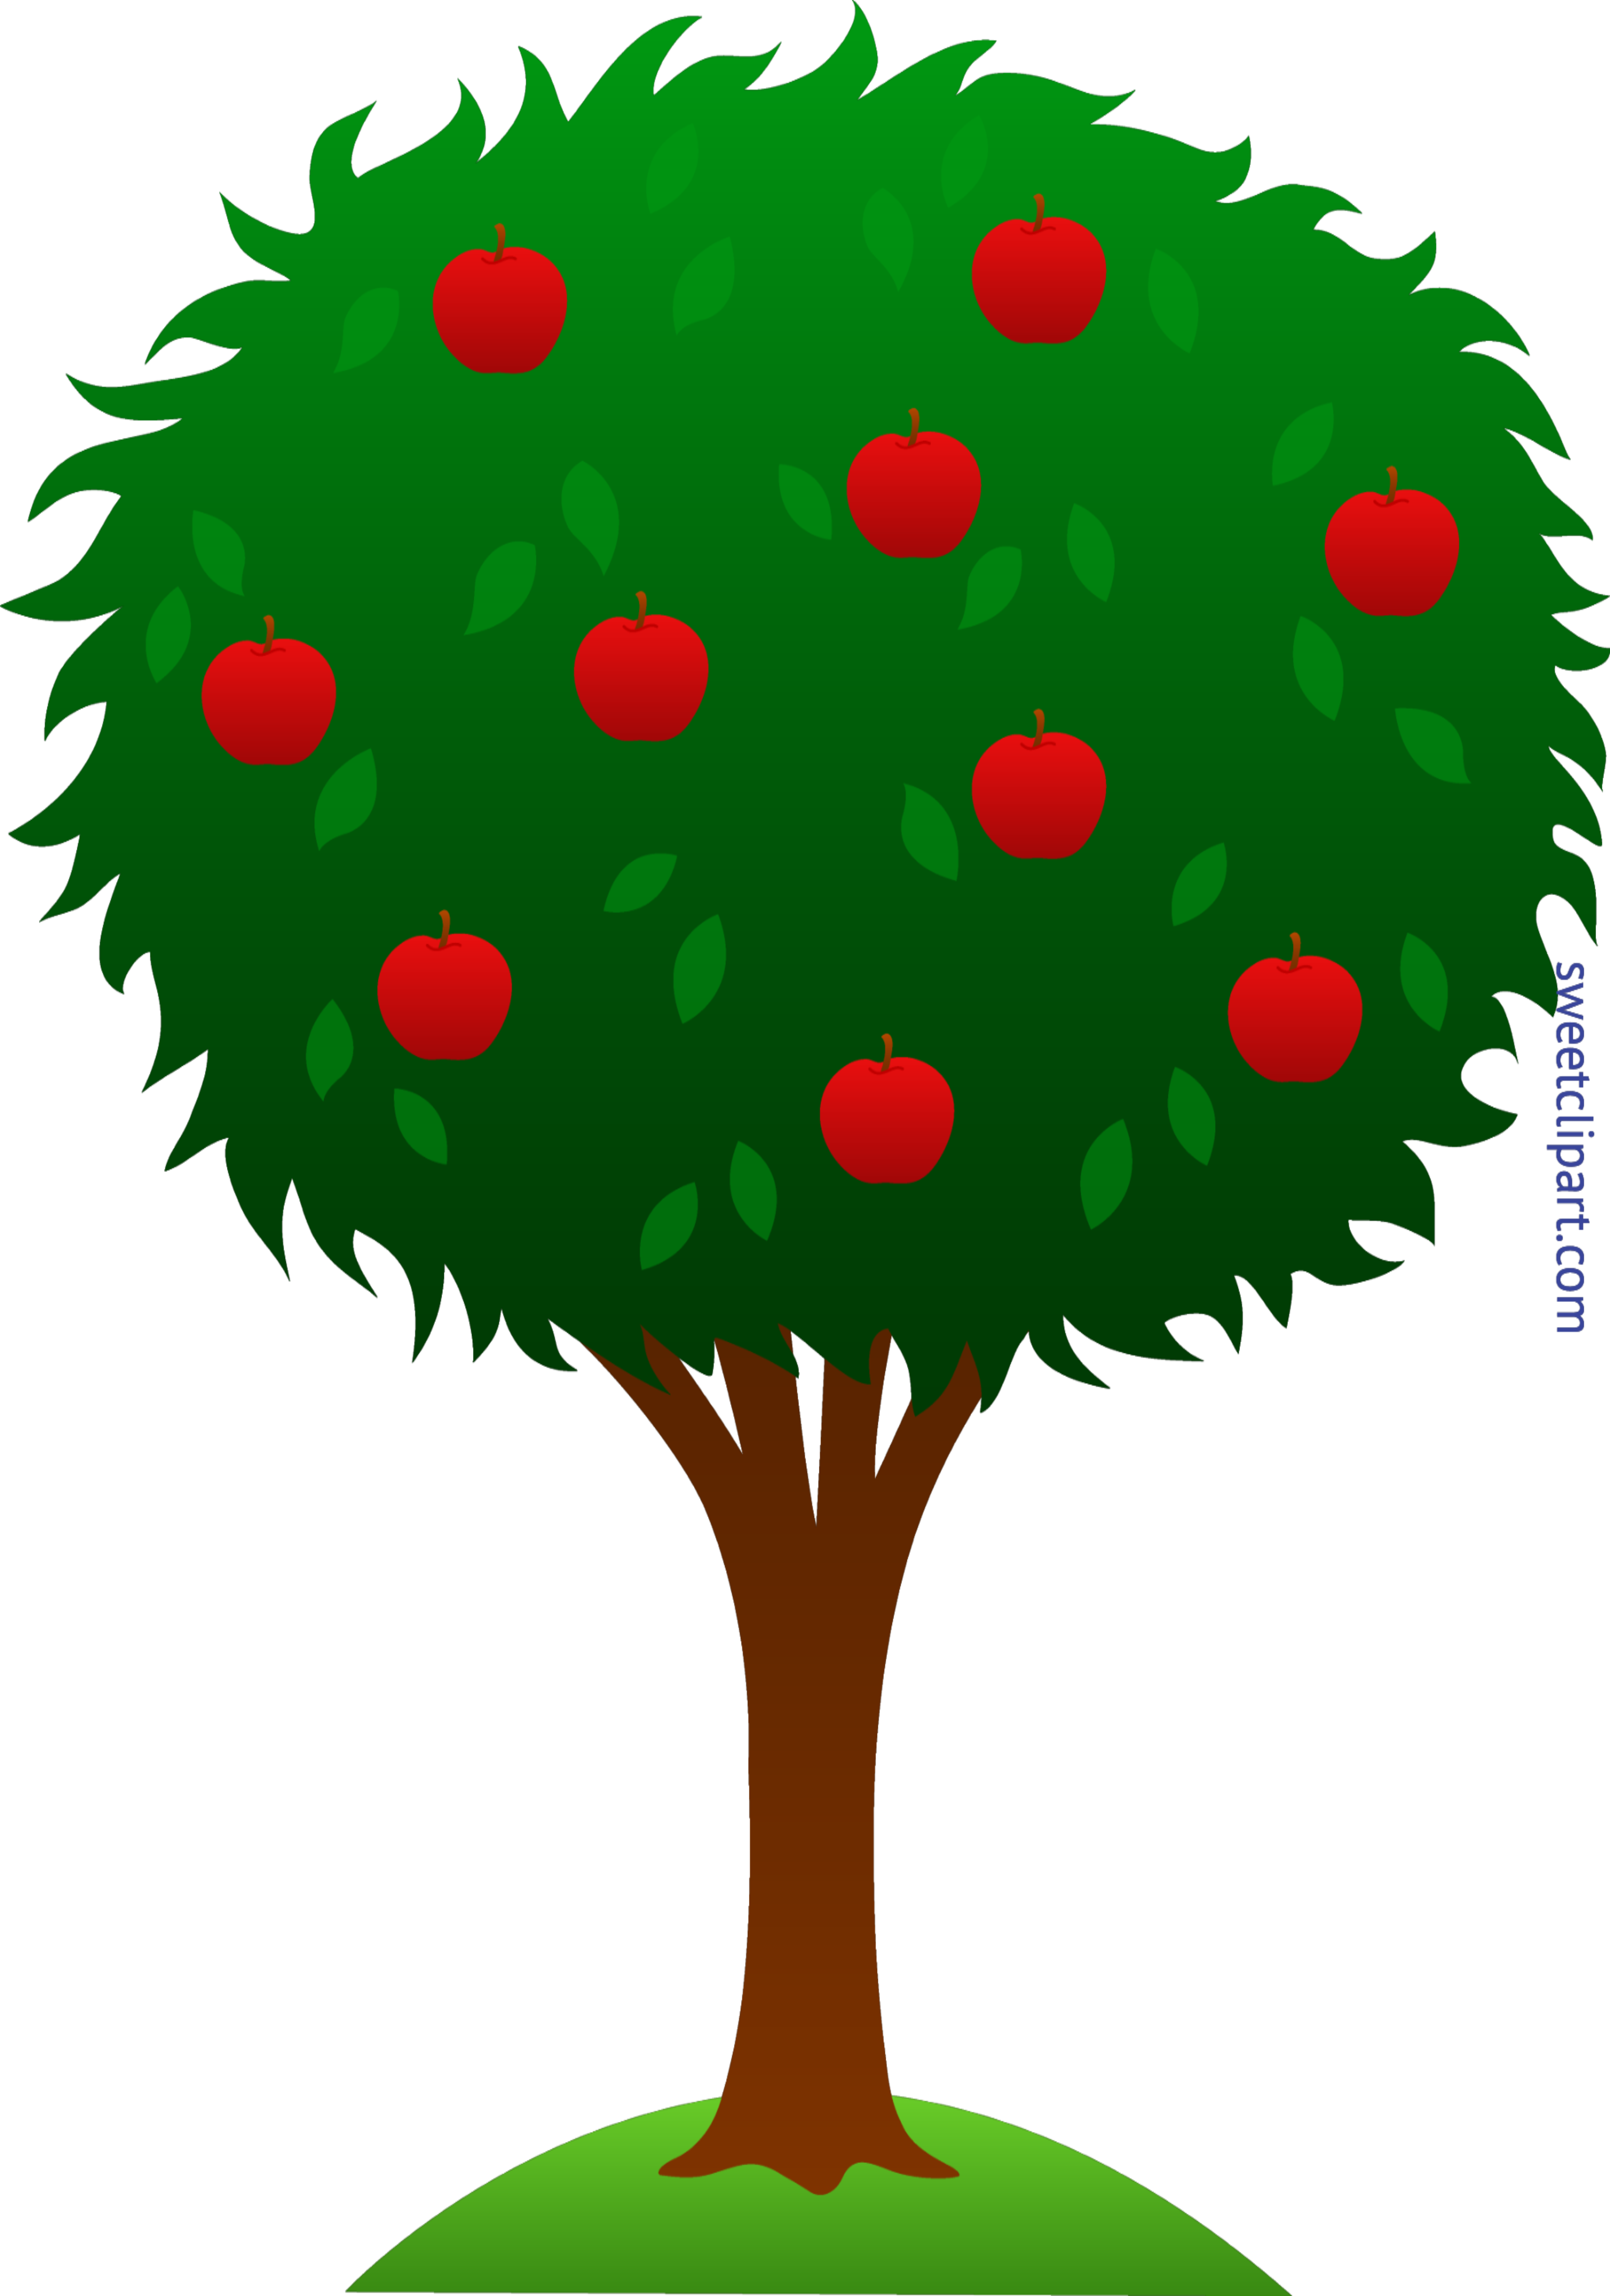 Clipart of apple trees clipart freeuse library Apple Tree Clip Art - Sweet Clip Art clipart freeuse library